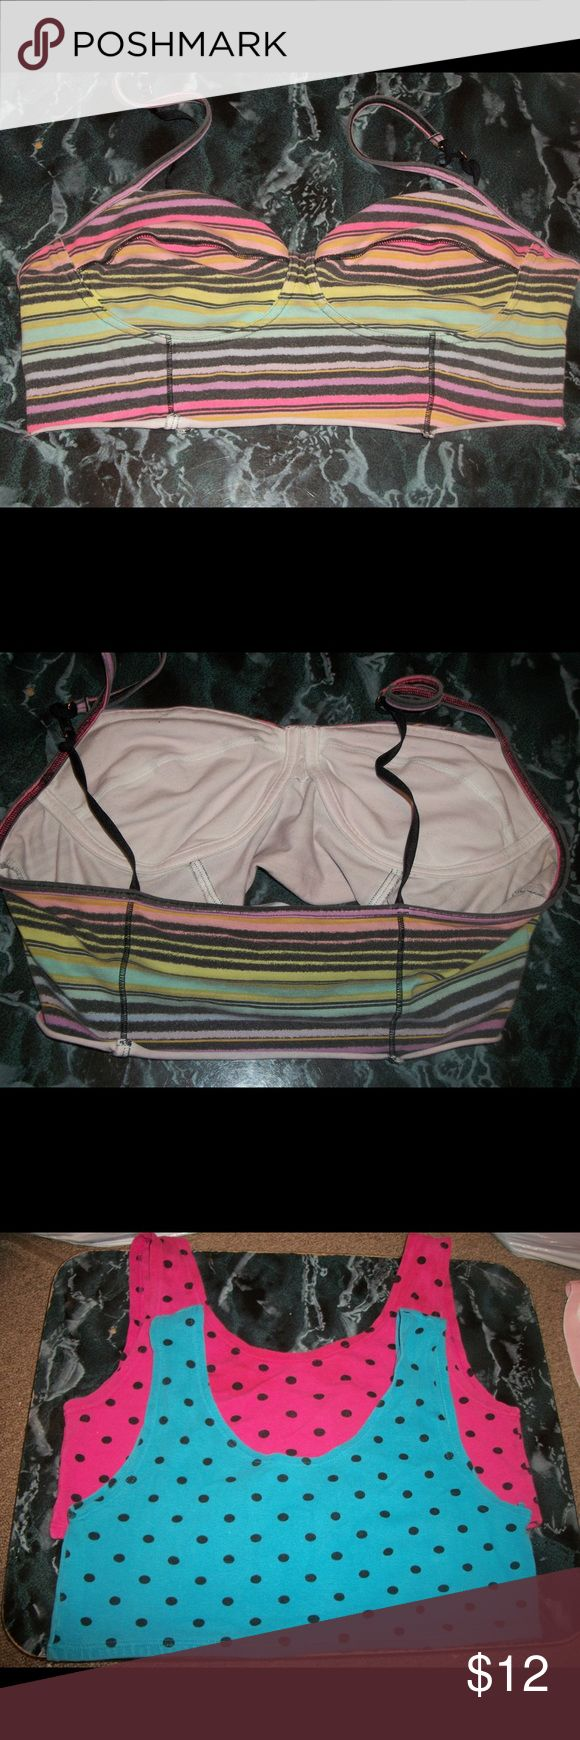 Stretchy Bras Up for sale is 4 bras in good condition. V.S. Colorful Stripes Cotton Stretch Bra Top Size M A'Milano Pink & Black Polka Dot Cotton StretchBra Top Size M A'Milano Blue & Black Polka Dot Cotton Stretch Bra Top Size M Hanes Pink Cotton Stretch Bra Top Size M No Name Brand Light Blue Lace Stretch Bra Top Size M Bravadol Animal Print Cotton Stretch Bra Size L Intimates & Sleepwear Bras